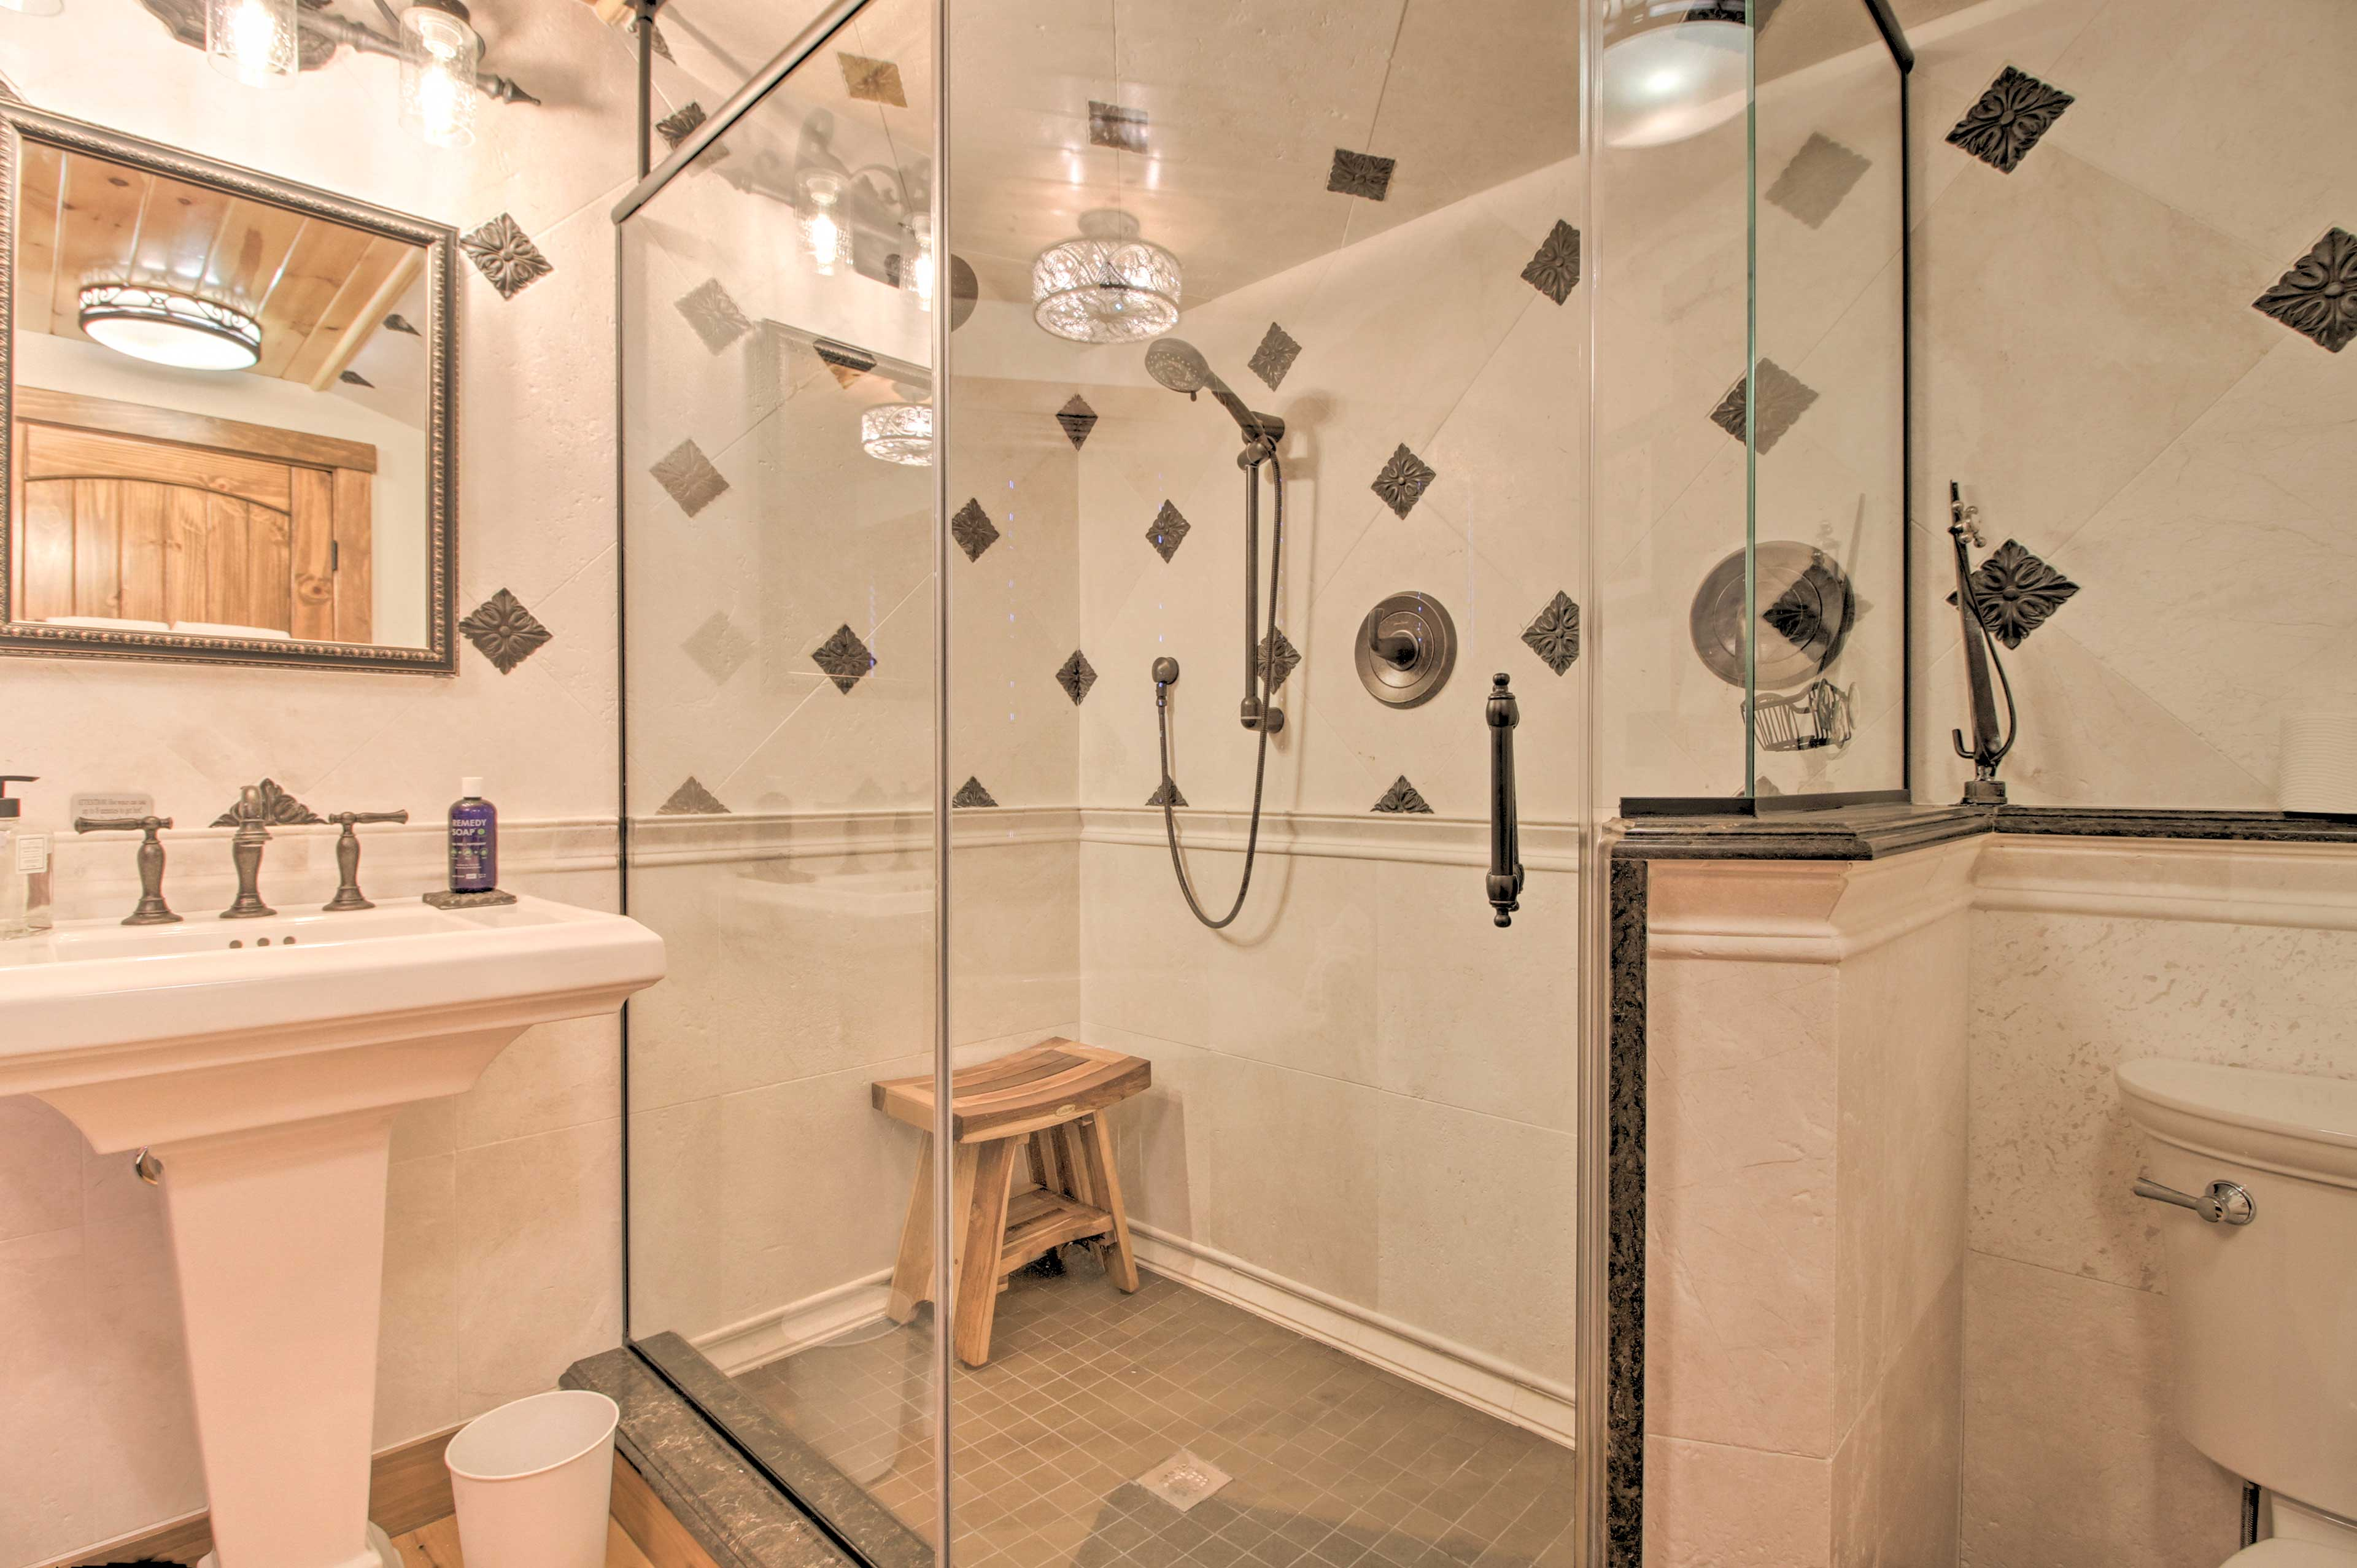 Step into the glass-frame shower to rinse off with the detachable shower head.